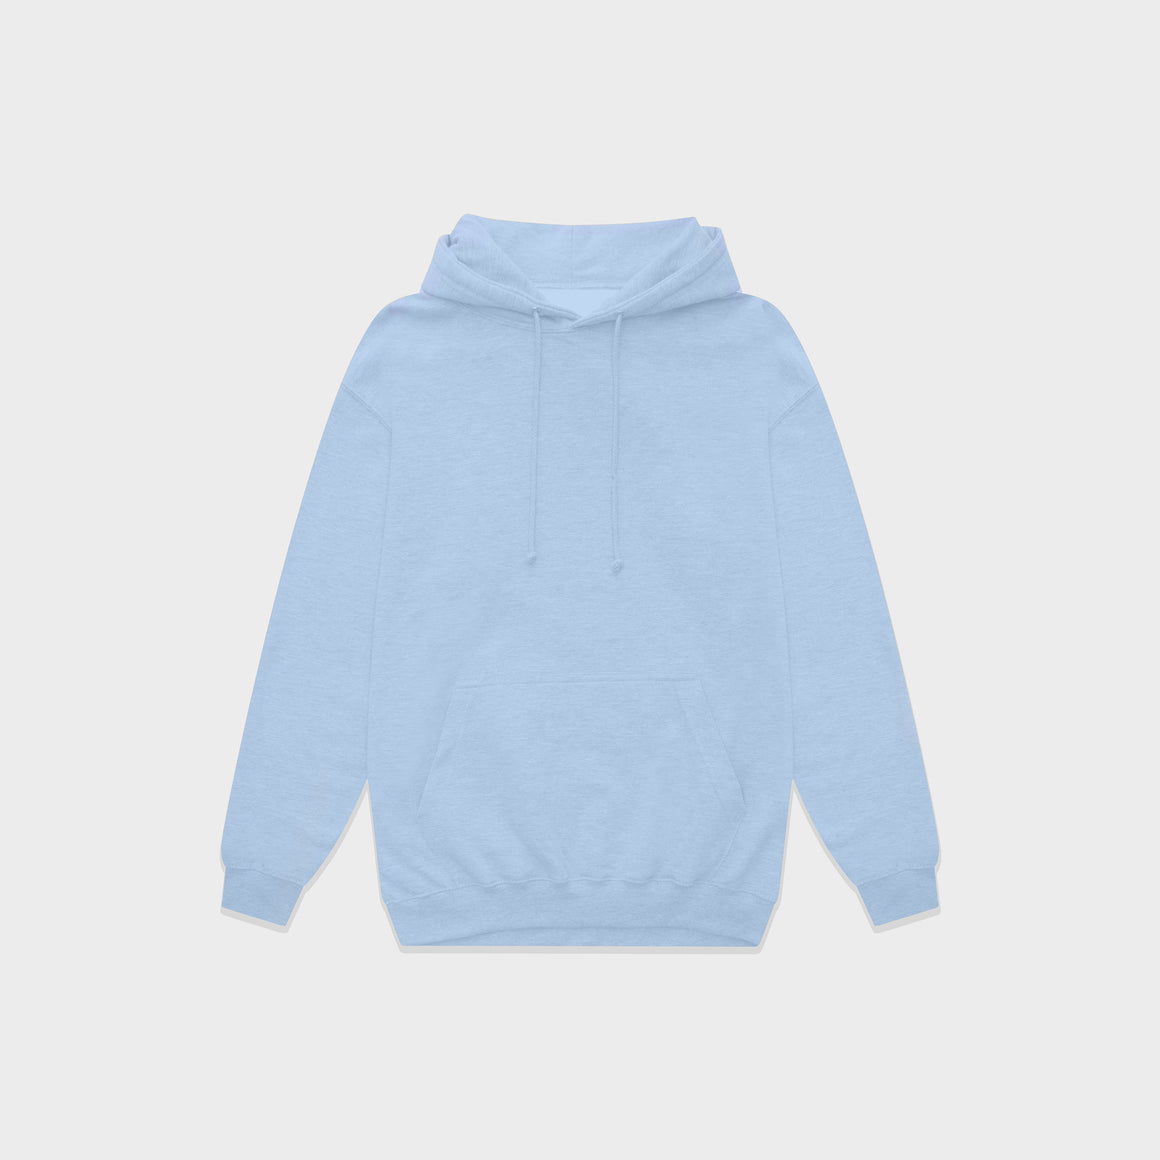 UNBRANDED ESSENTIAL PULLOVER HOODY | SKY BLUE